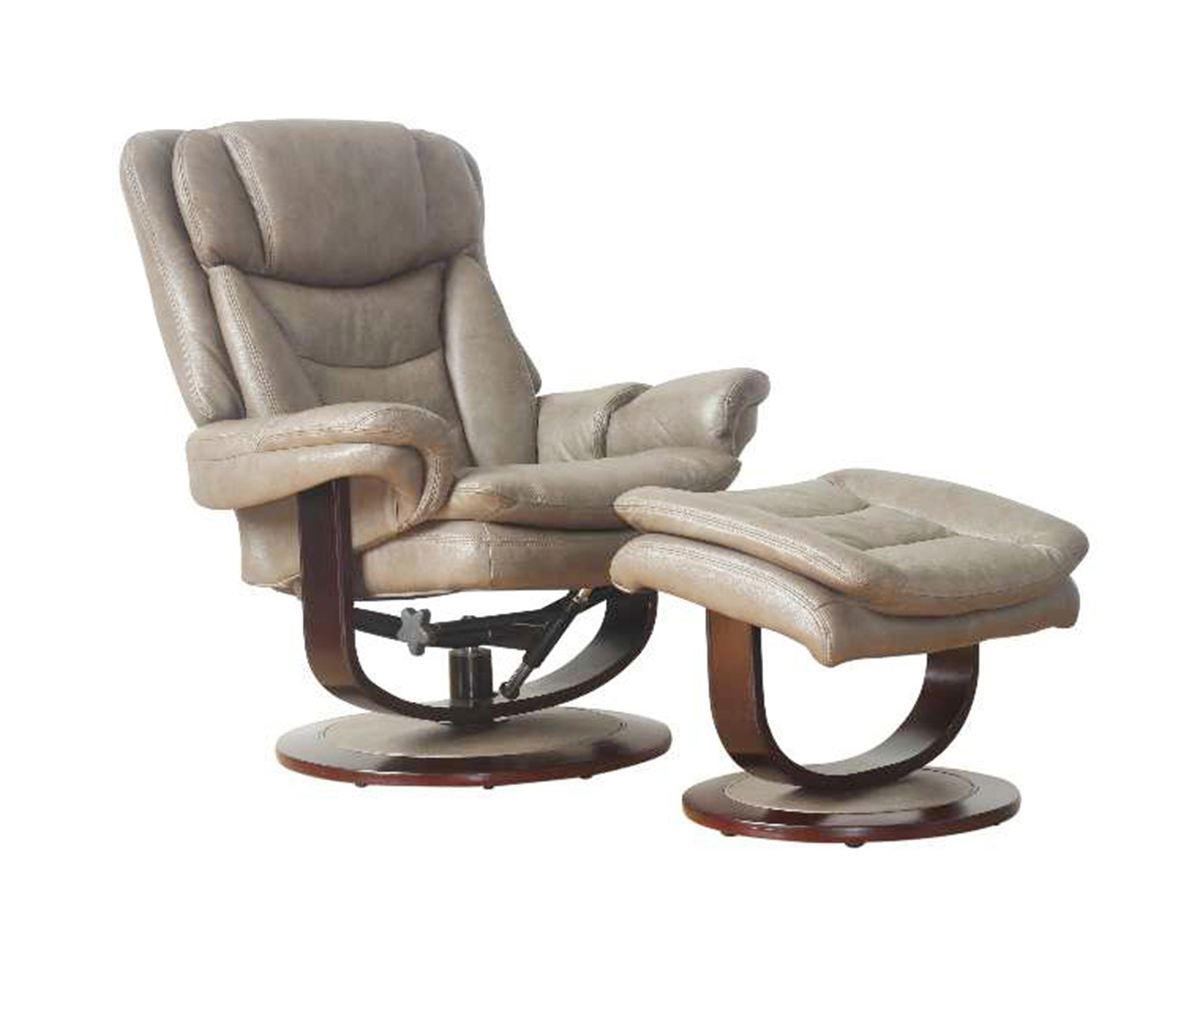 Swell Barcalounger Roscoe Pedestal Recliner Chair And Ottoman Chelsea Cobblestone Leather Match Pdpeps Interior Chair Design Pdpepsorg